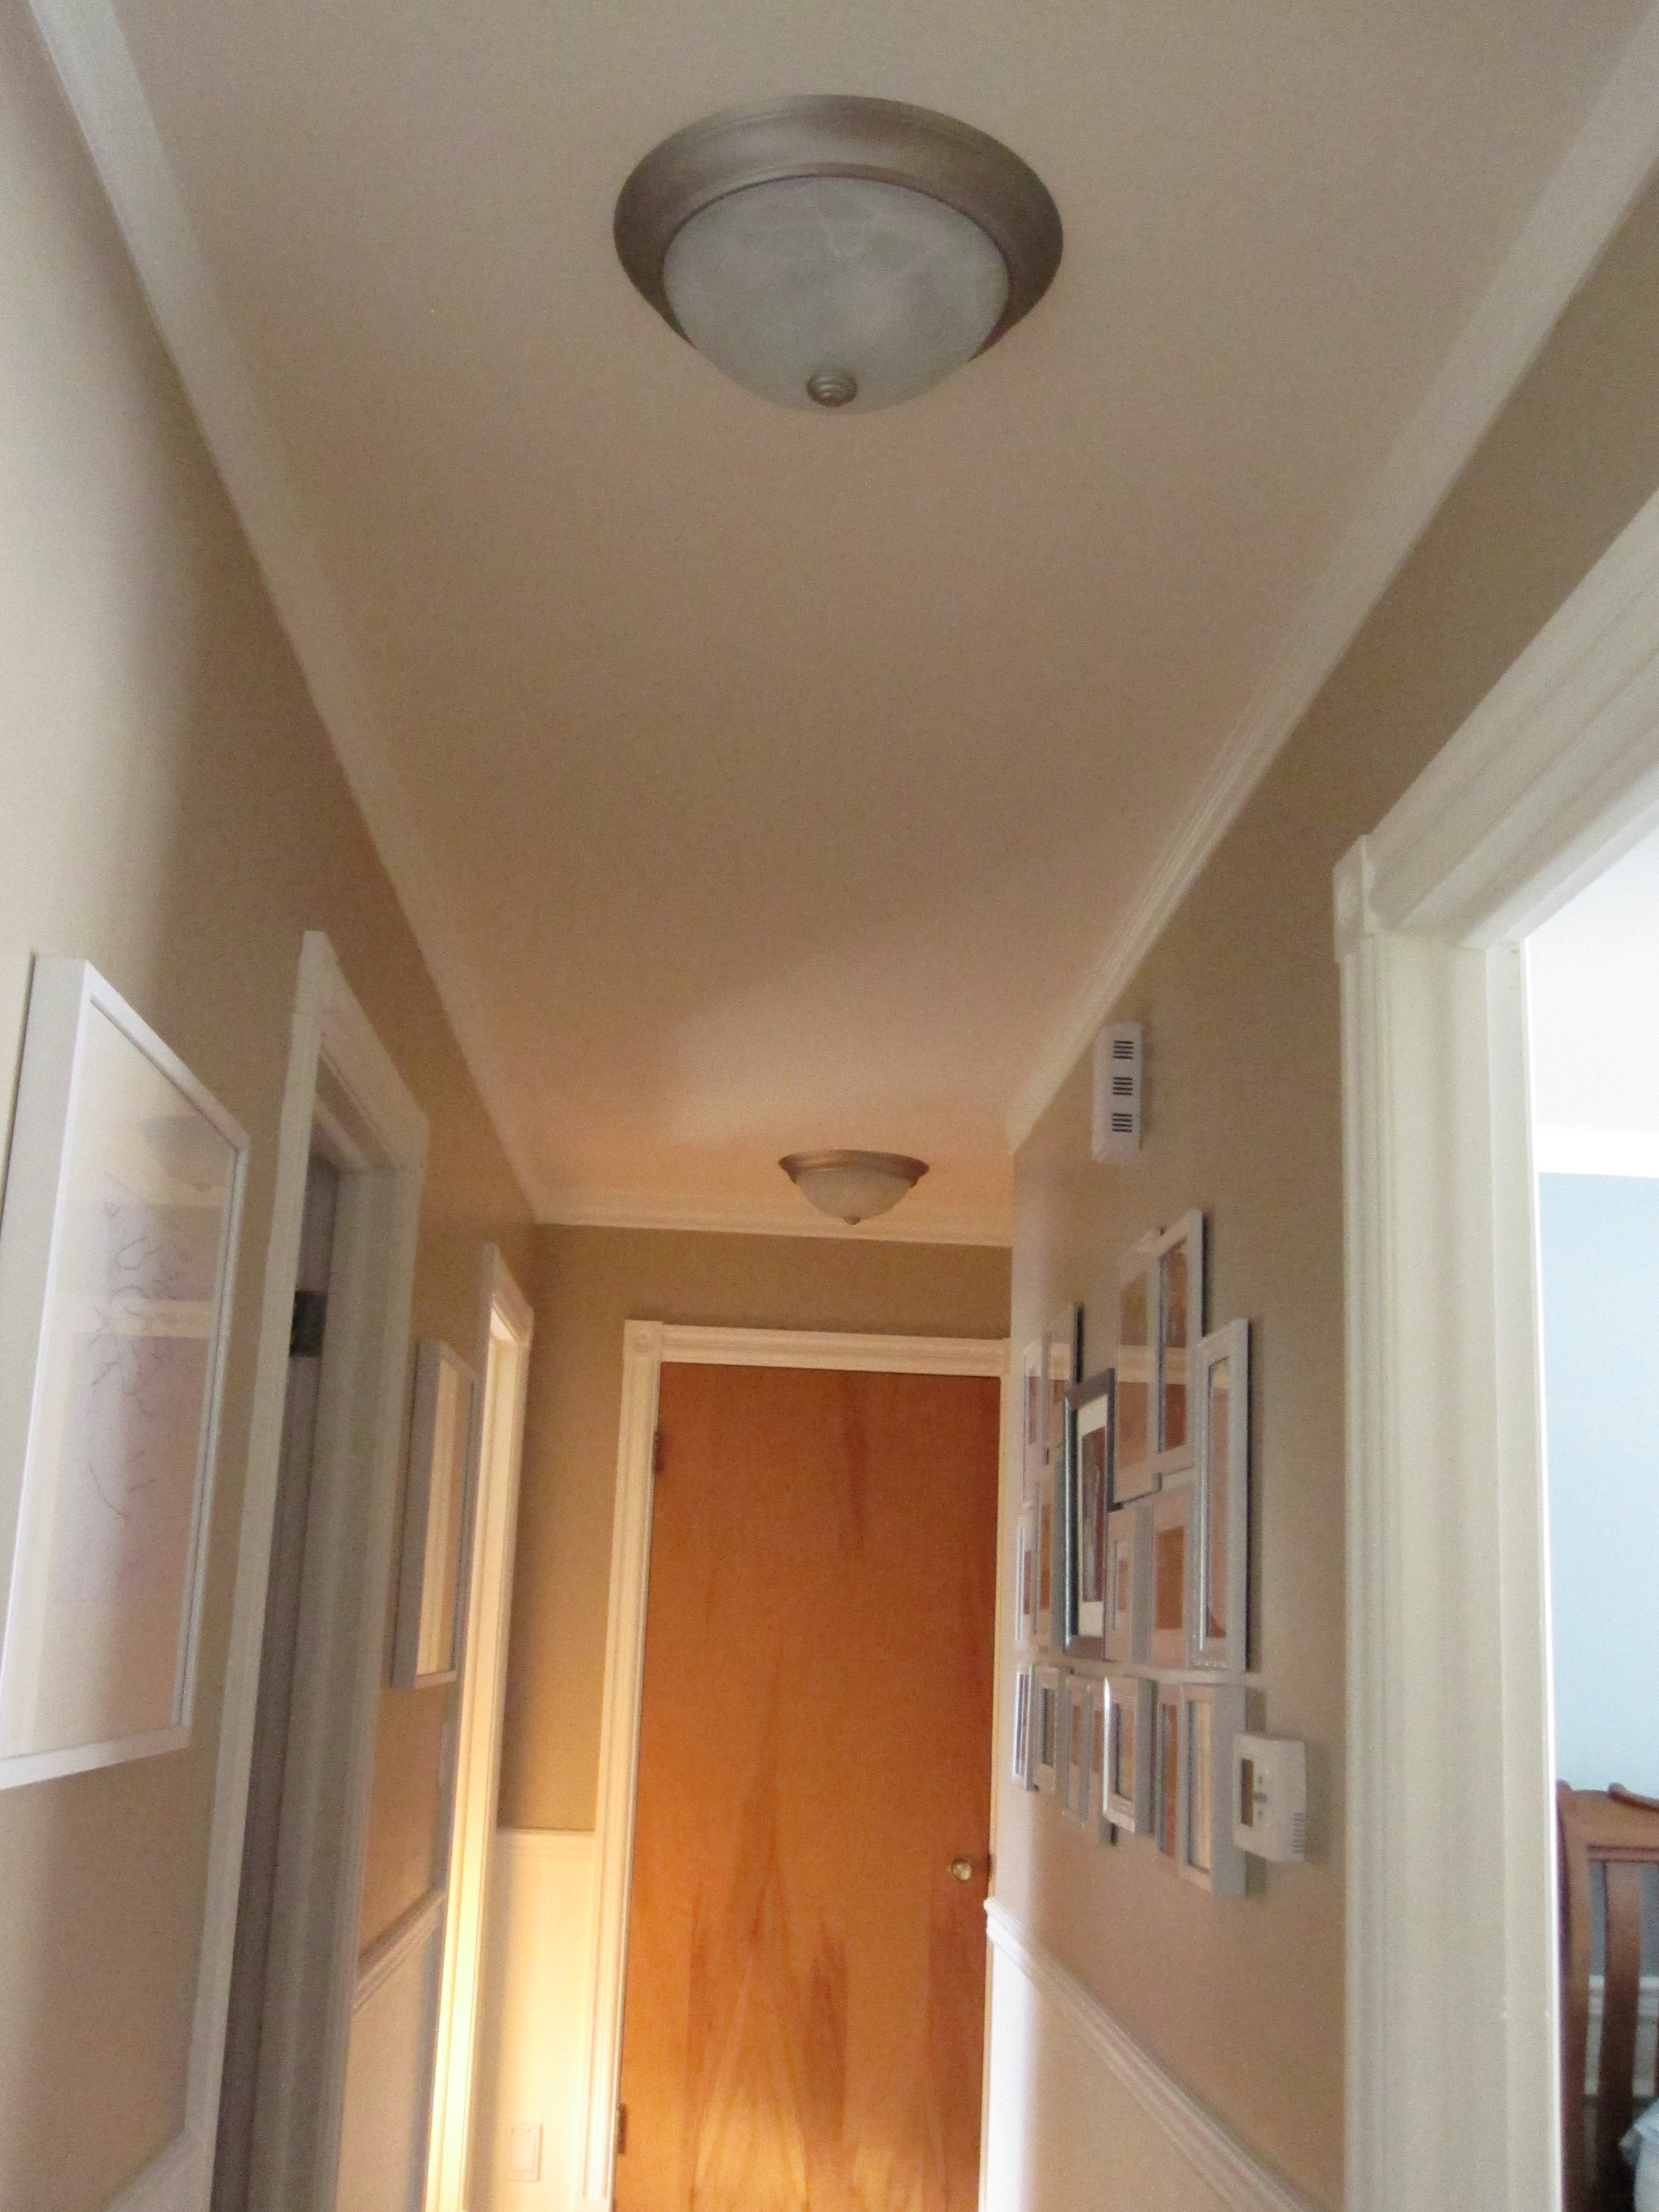 Simple Solutions: Lighting | Our Humble Abode